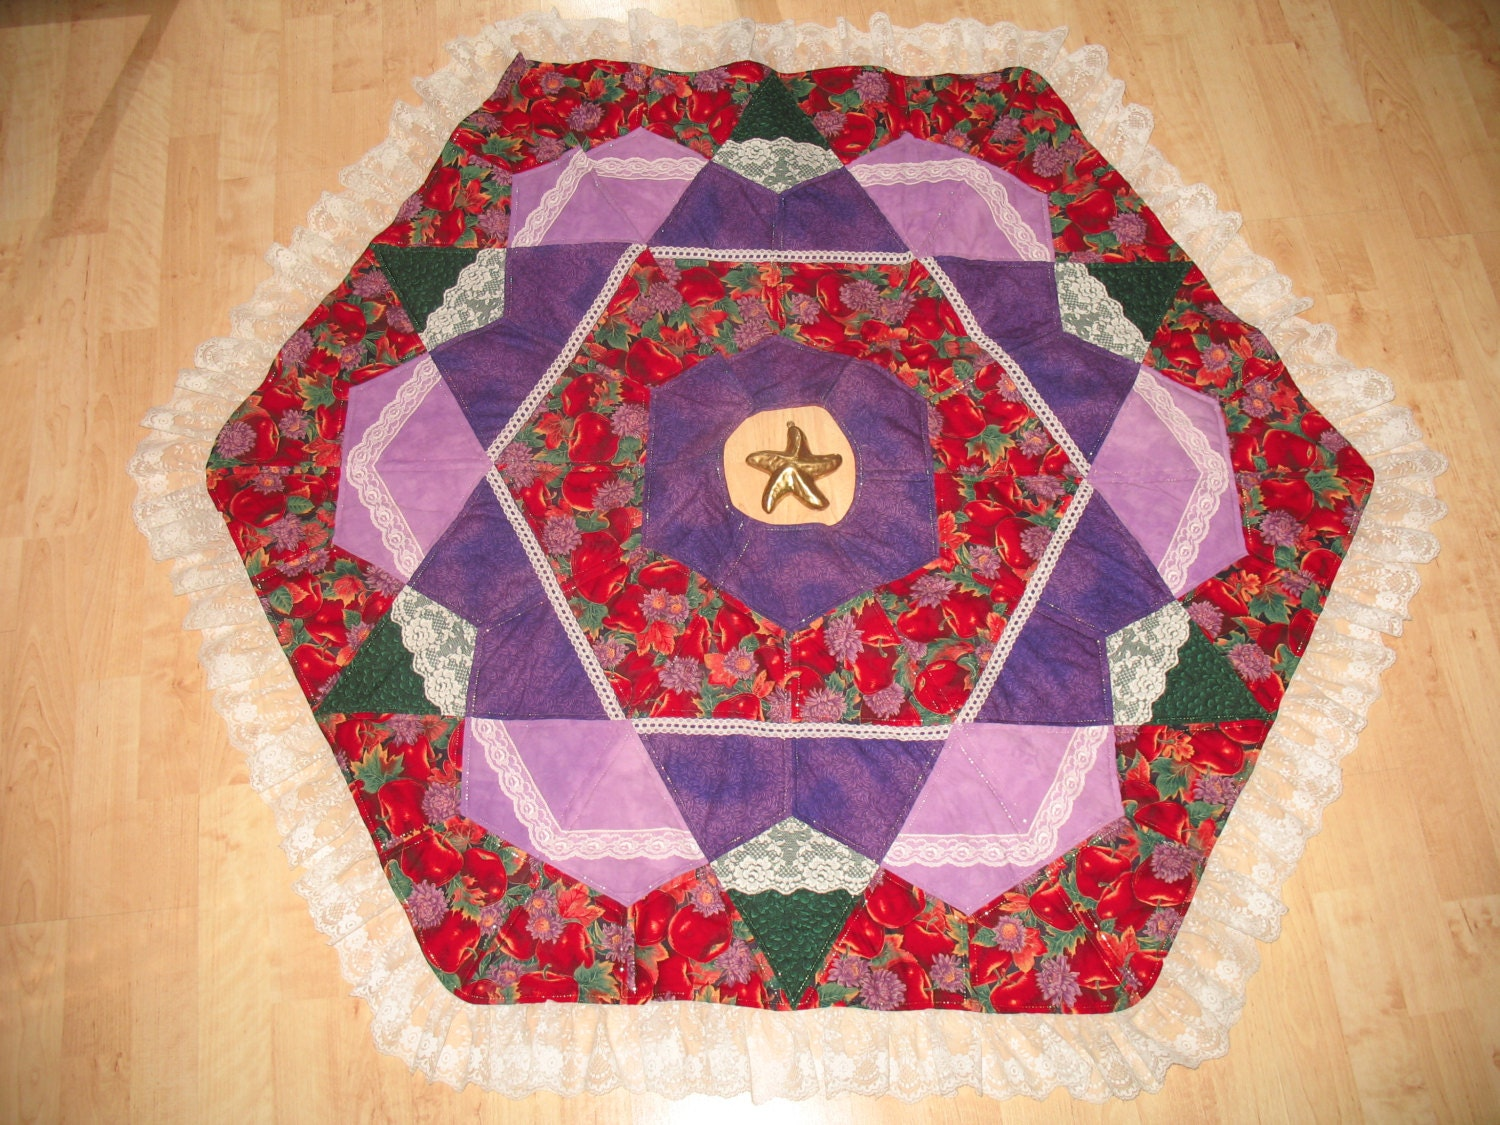 Quilted Christmas Tree Skirt Pinterest : Christmas Quilted Tree Skirt Quilt Apples & Lace by QuiltinWaYnE